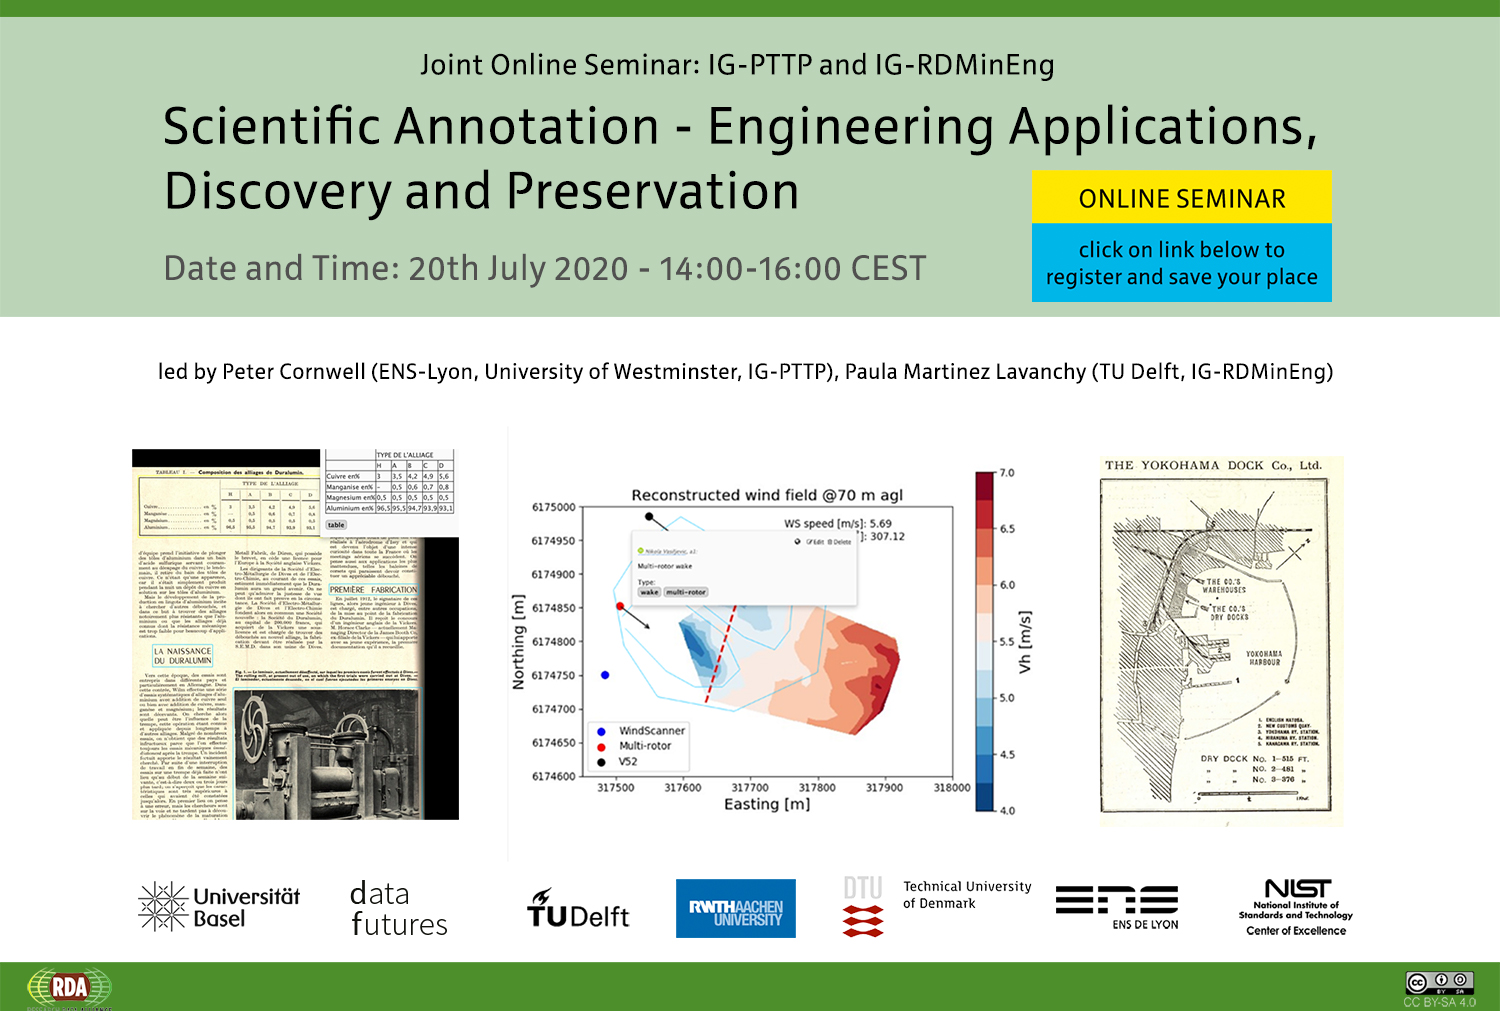 Joint online seminar IG-PTTP & IG-RDMinEng: Scientific Annotation - Engineering Applications, Discovery and Preservation